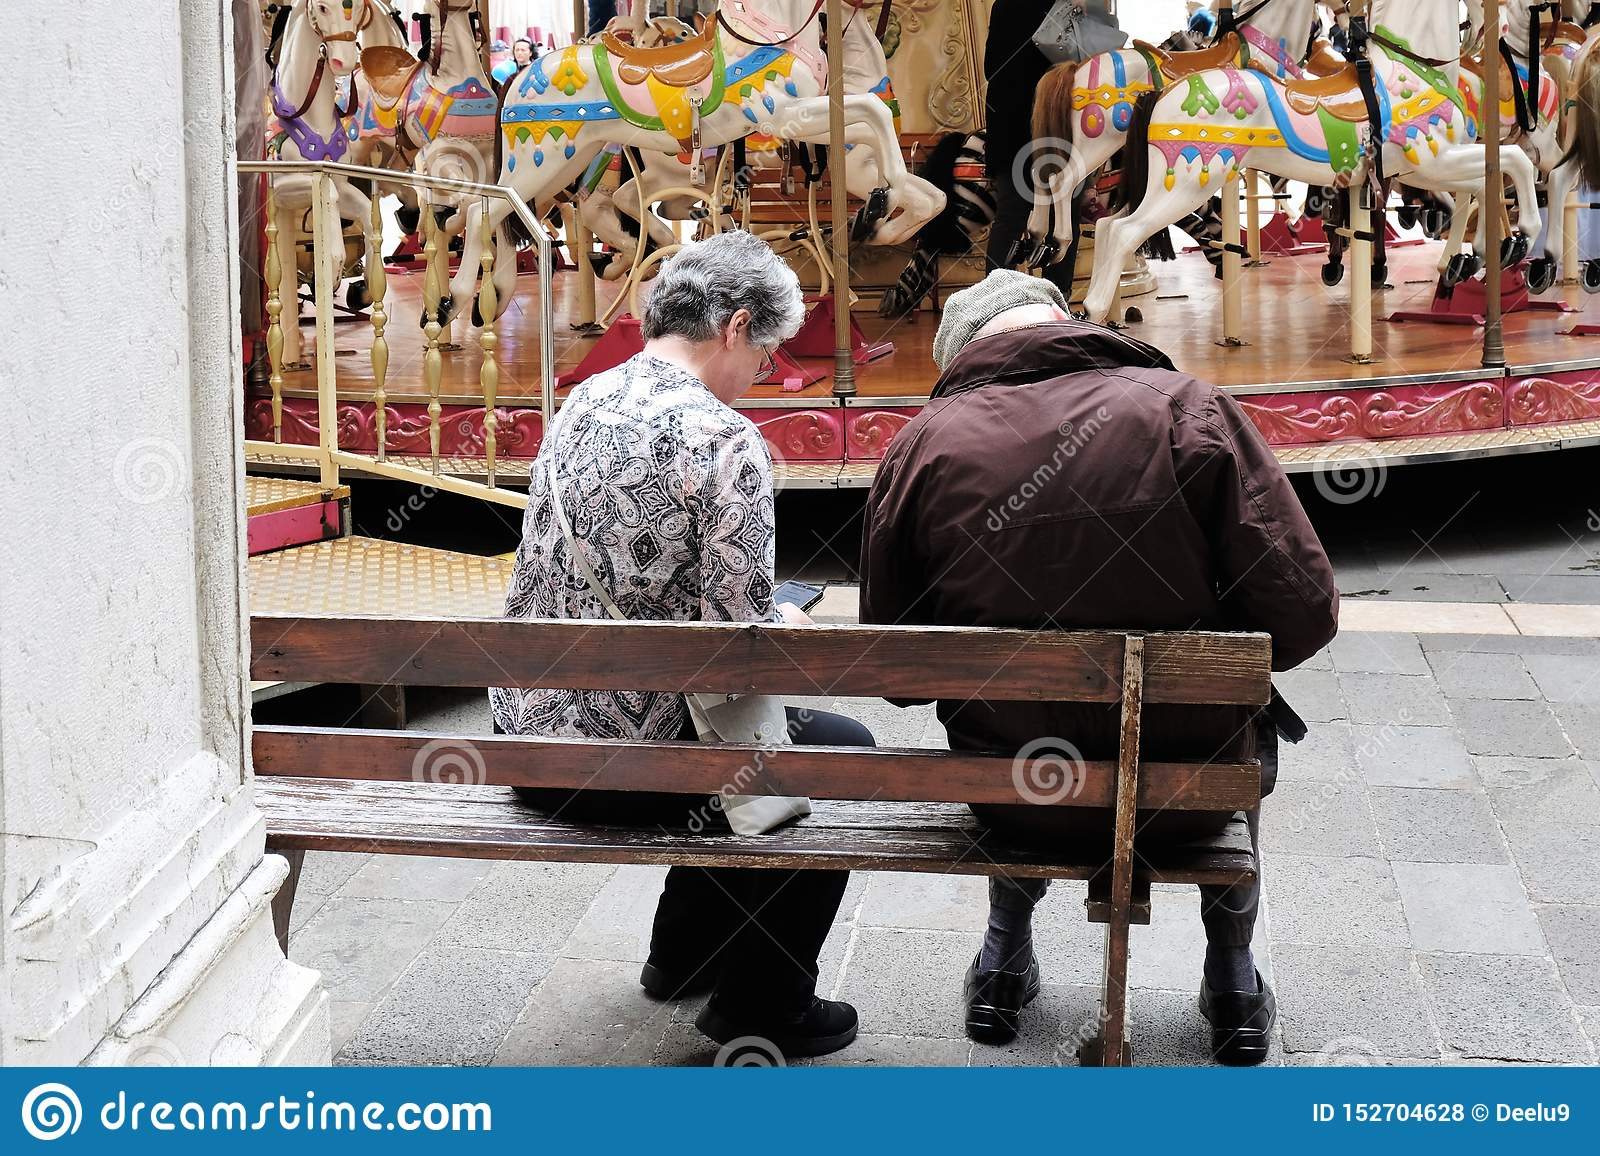 Elderely couple resting on bench in front of merry go round in Treviso, Italy